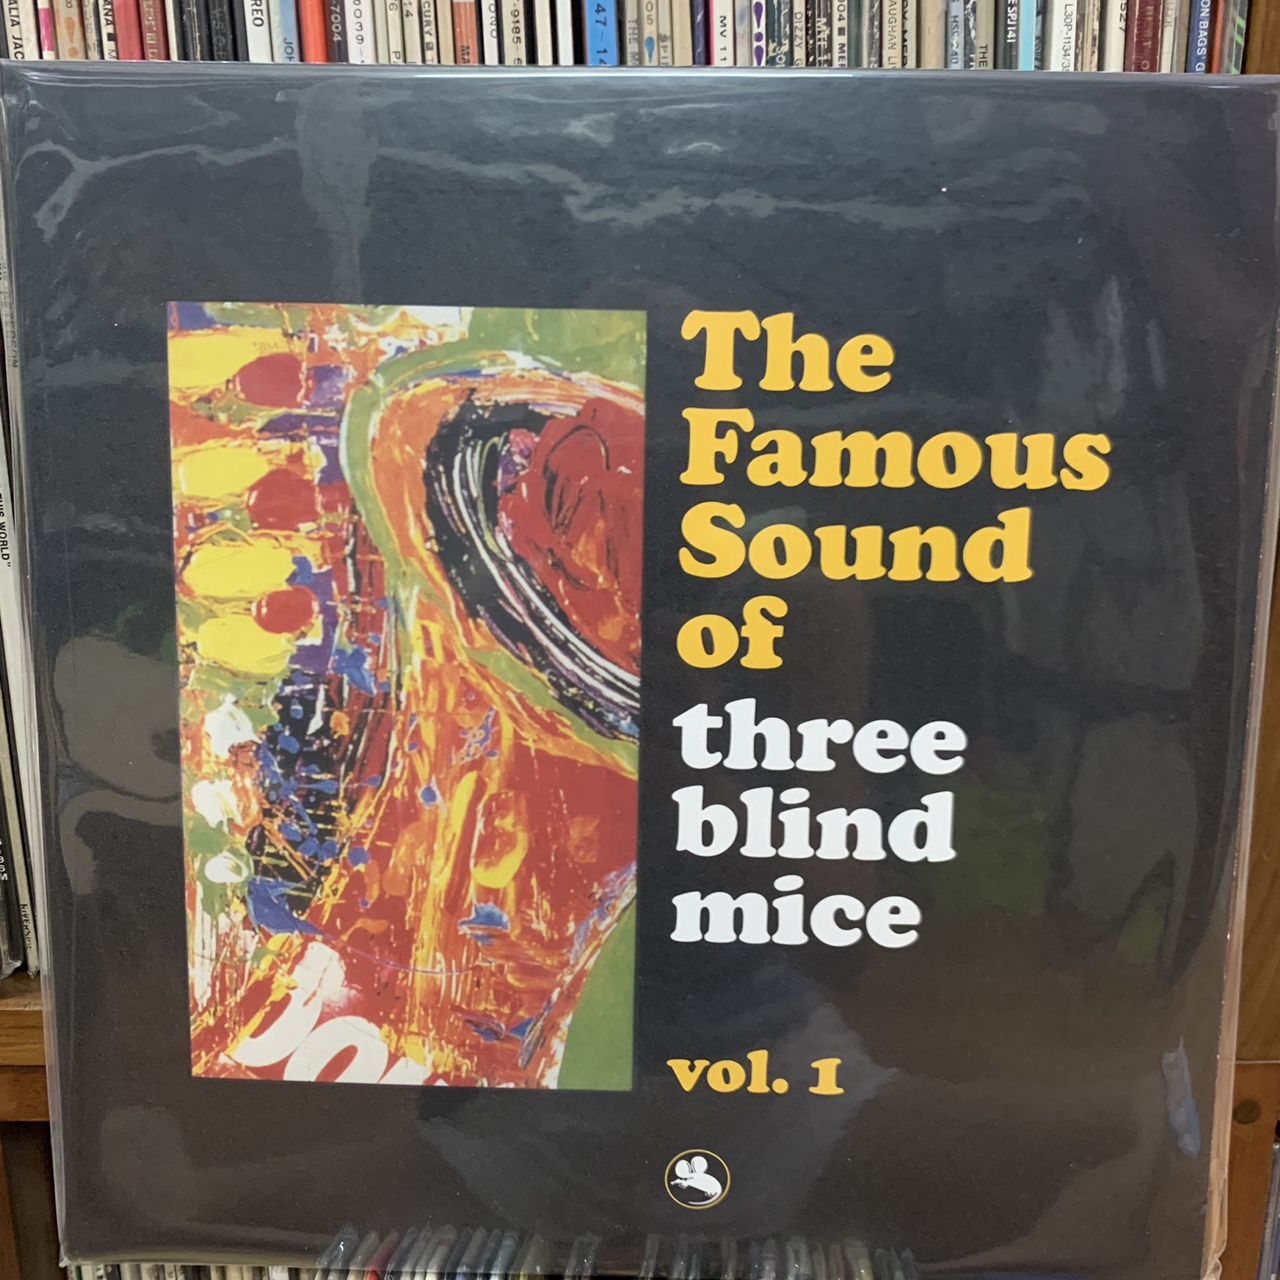 lp-the-famous-sound-of-three-blind-mice-vol-1